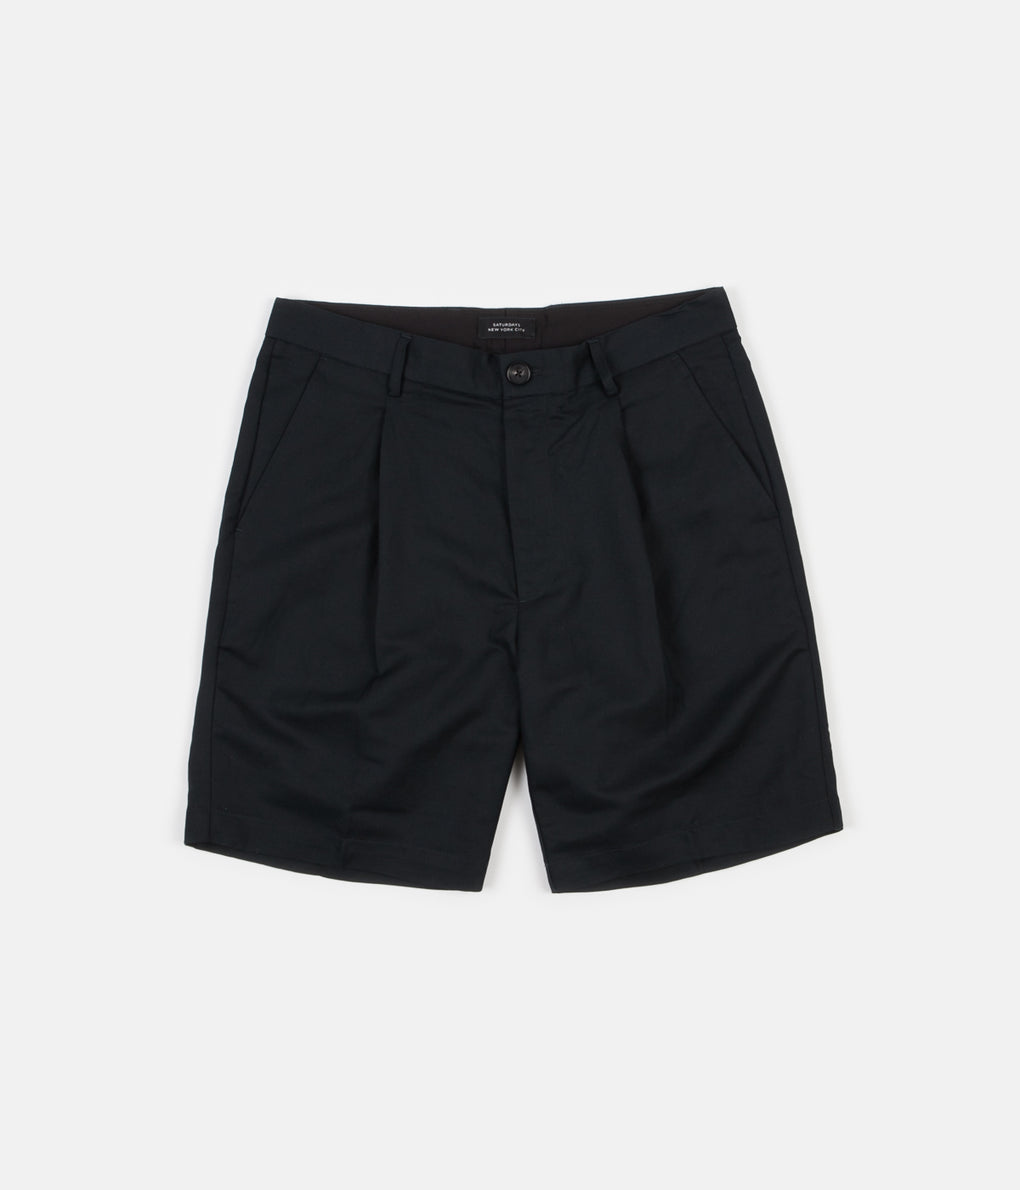 Saturdays NYC Gurkha Shorts - Black